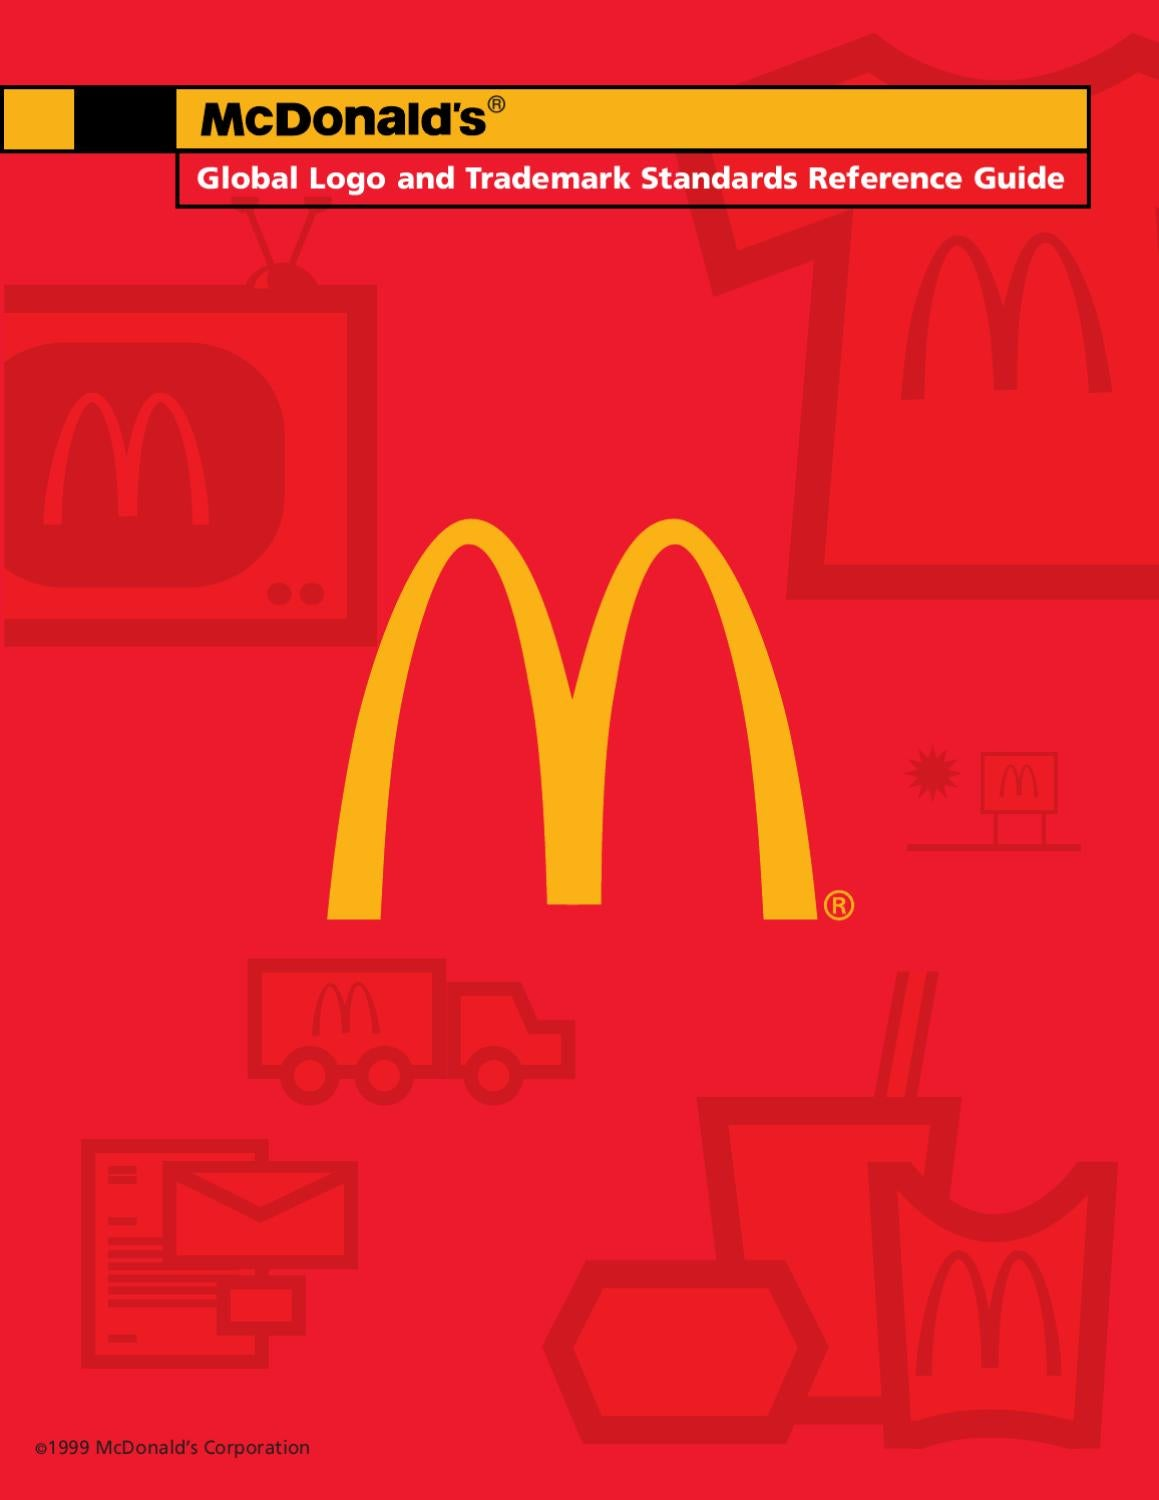 mcdonalds corporate identity Dowling (2001) defines corporate identity as the symbols and names used by an organization to identify itself to people according to dowling, corporate identity helps people find or recognize an organization ind (1997) refers to identity as the outward manifestation of an organization mcdonald's, disney and nike provide.